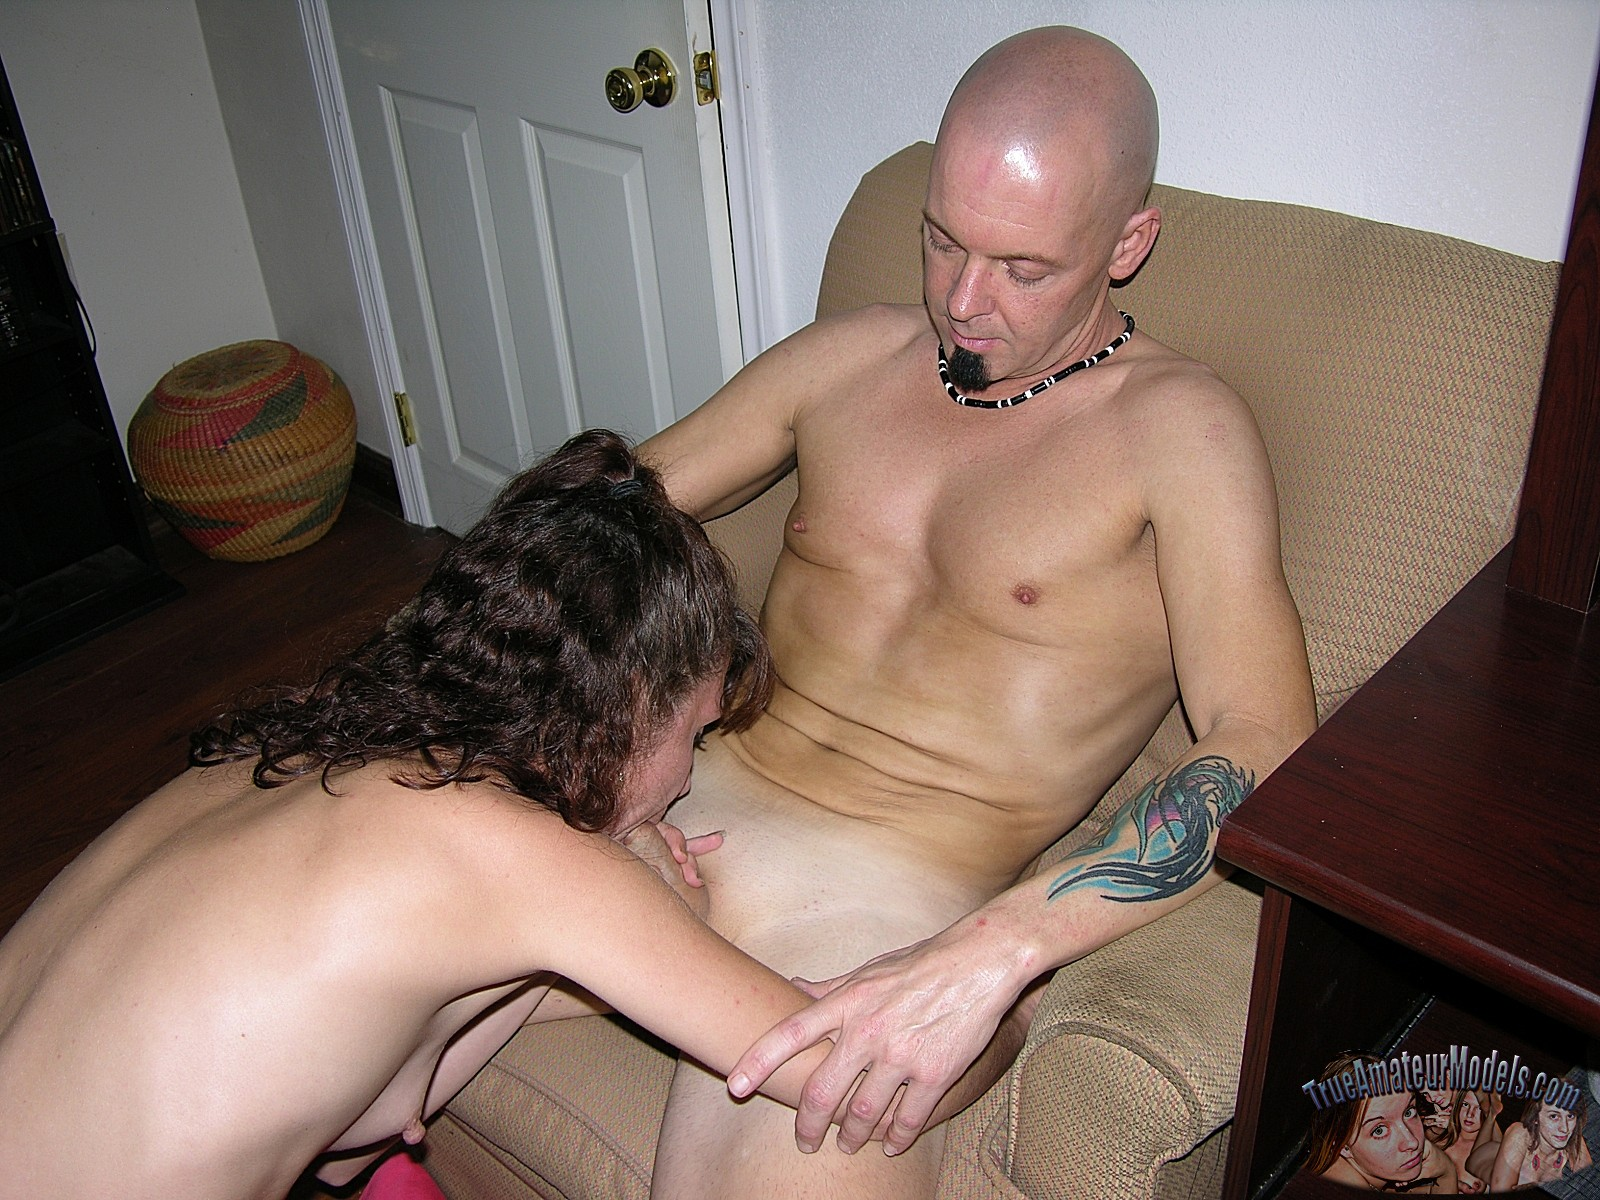 Nude amateur mom blowjobs was specially